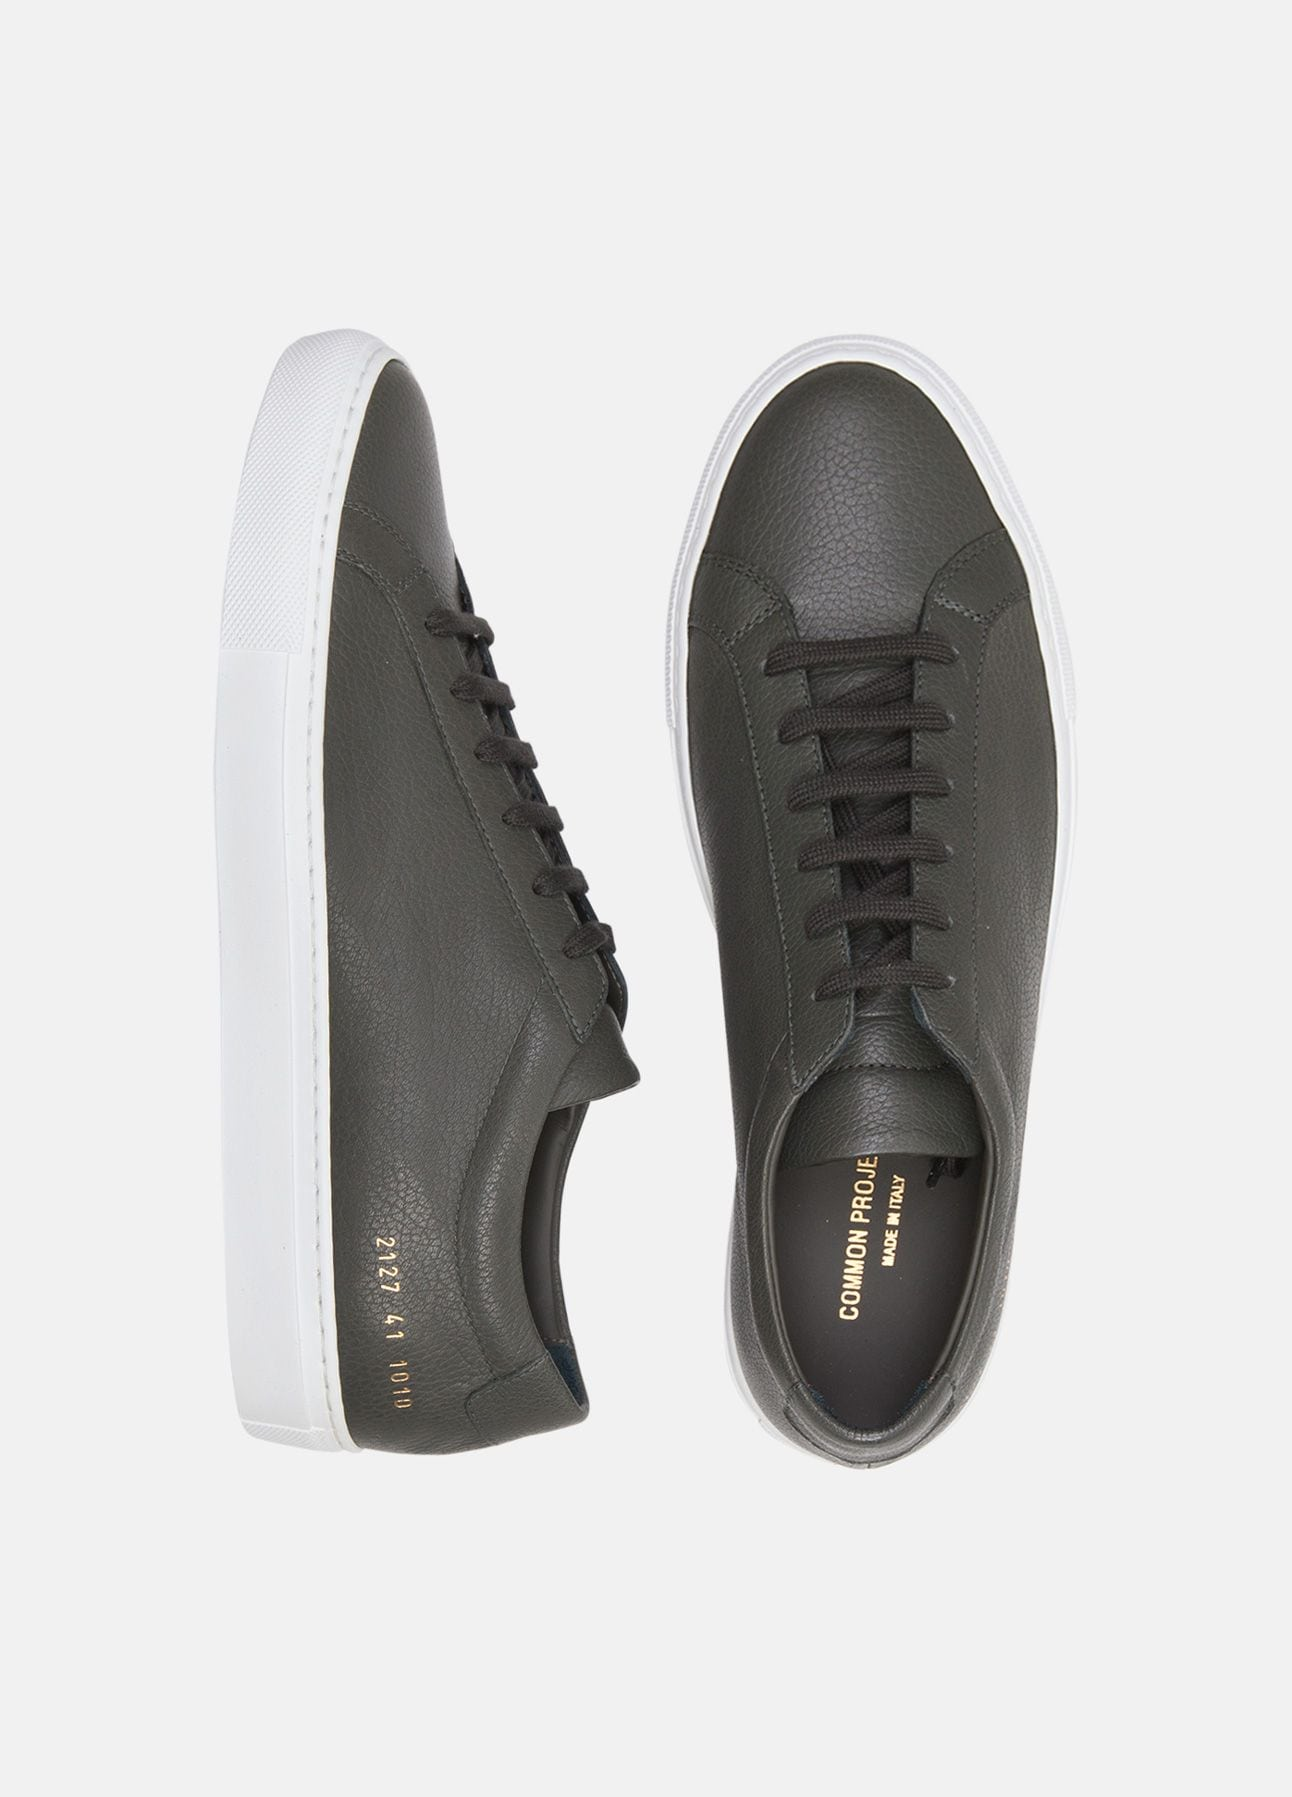 Grønne sneakers fra Common Projects